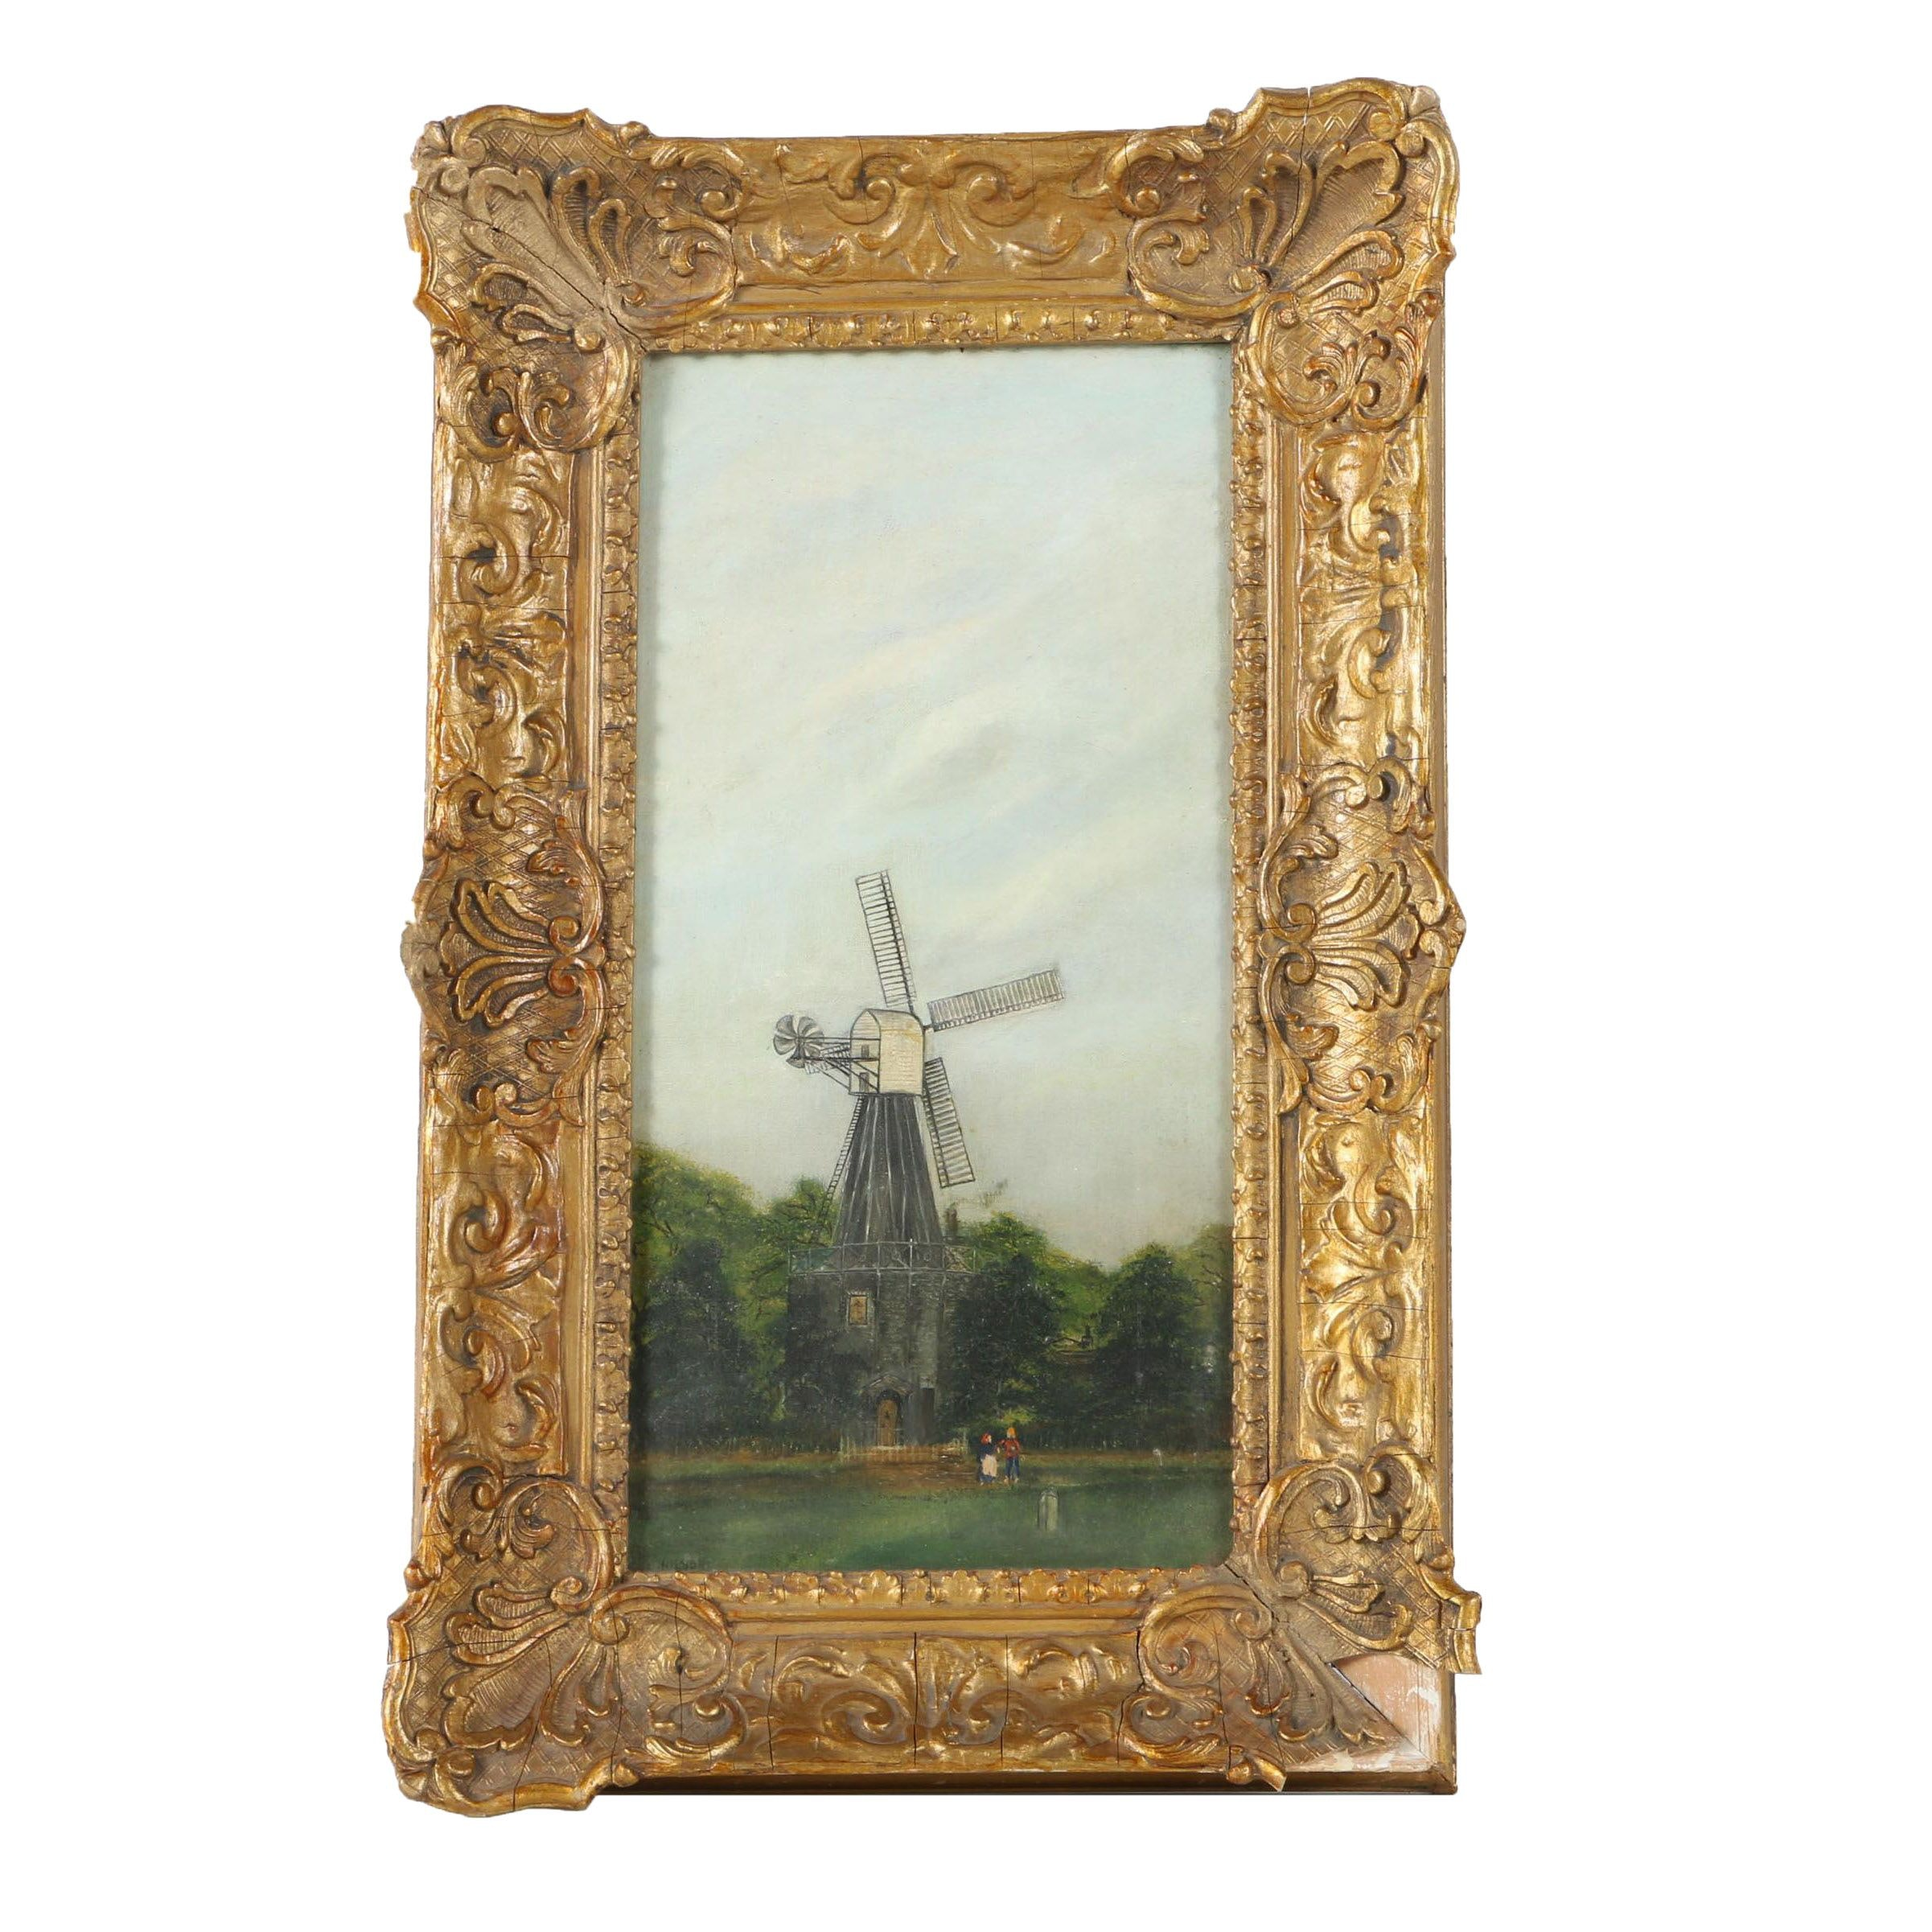 Oil Painting on Canvas Attributed to George Washington Nicholson of a Windmill